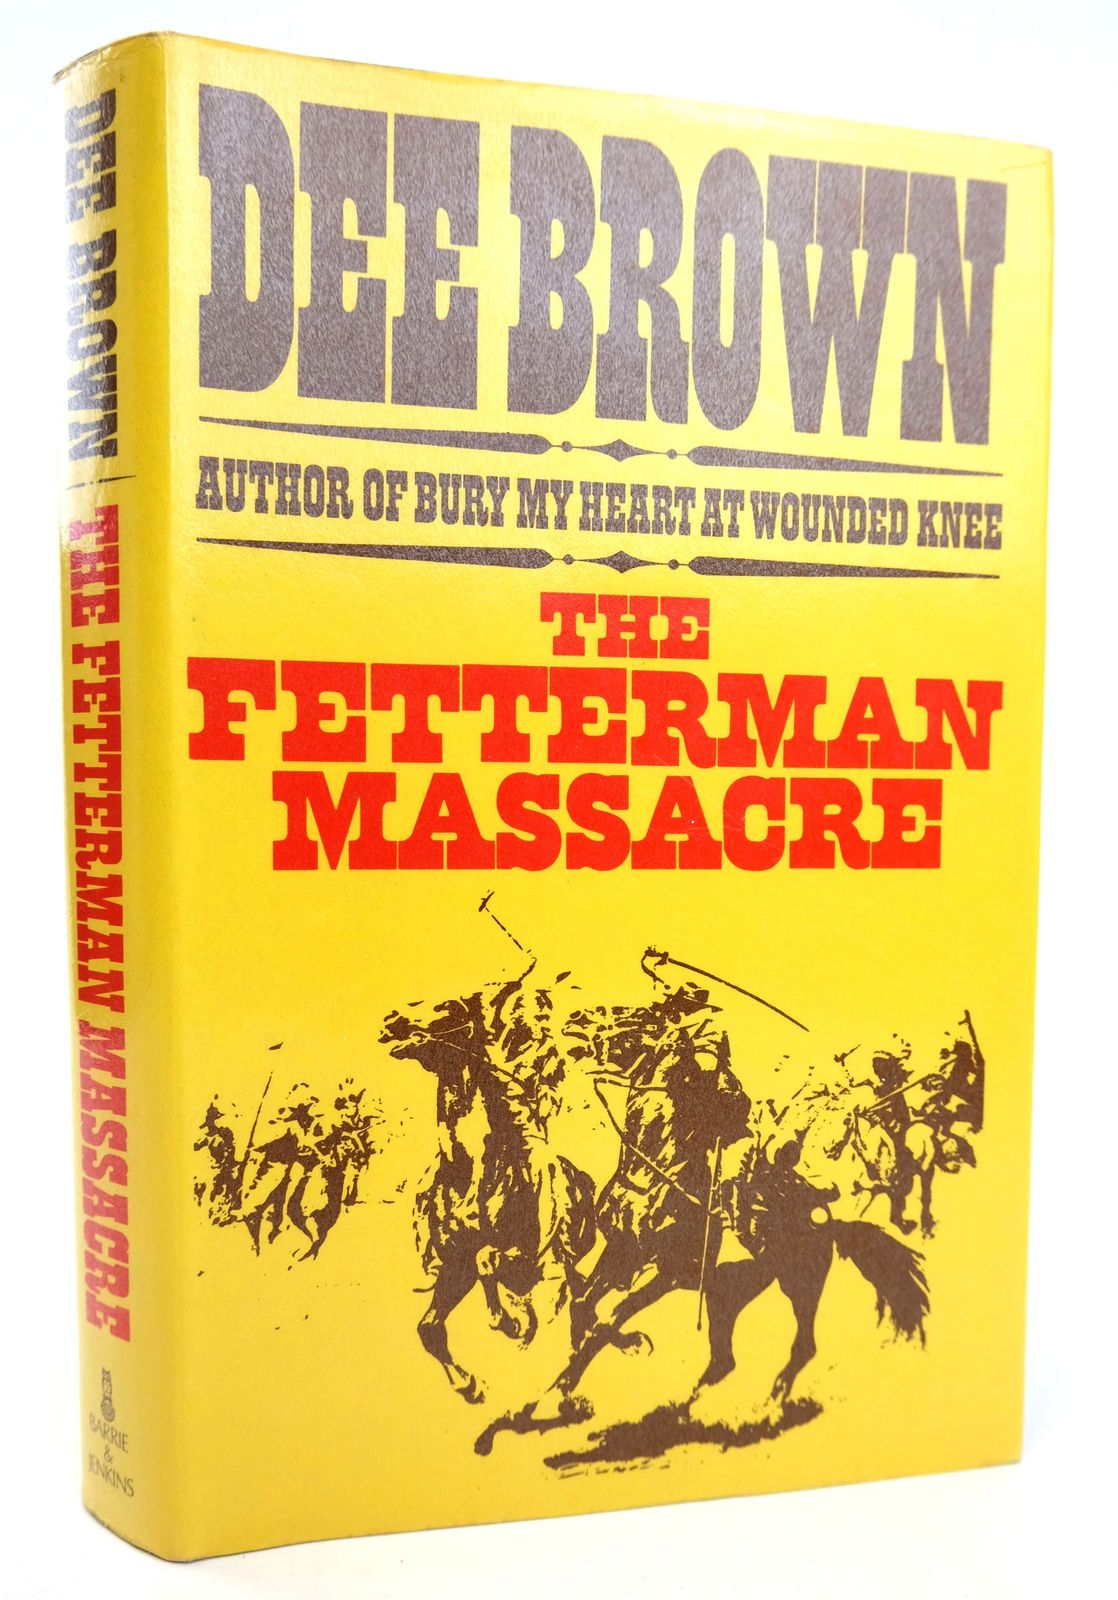 Photo of THE FETTERMAN MASSACRE: AN AMERICAN SAGA written by Brown, Dee published by Barrie & Jenkins (STOCK CODE: 1818942)  for sale by Stella & Rose's Books